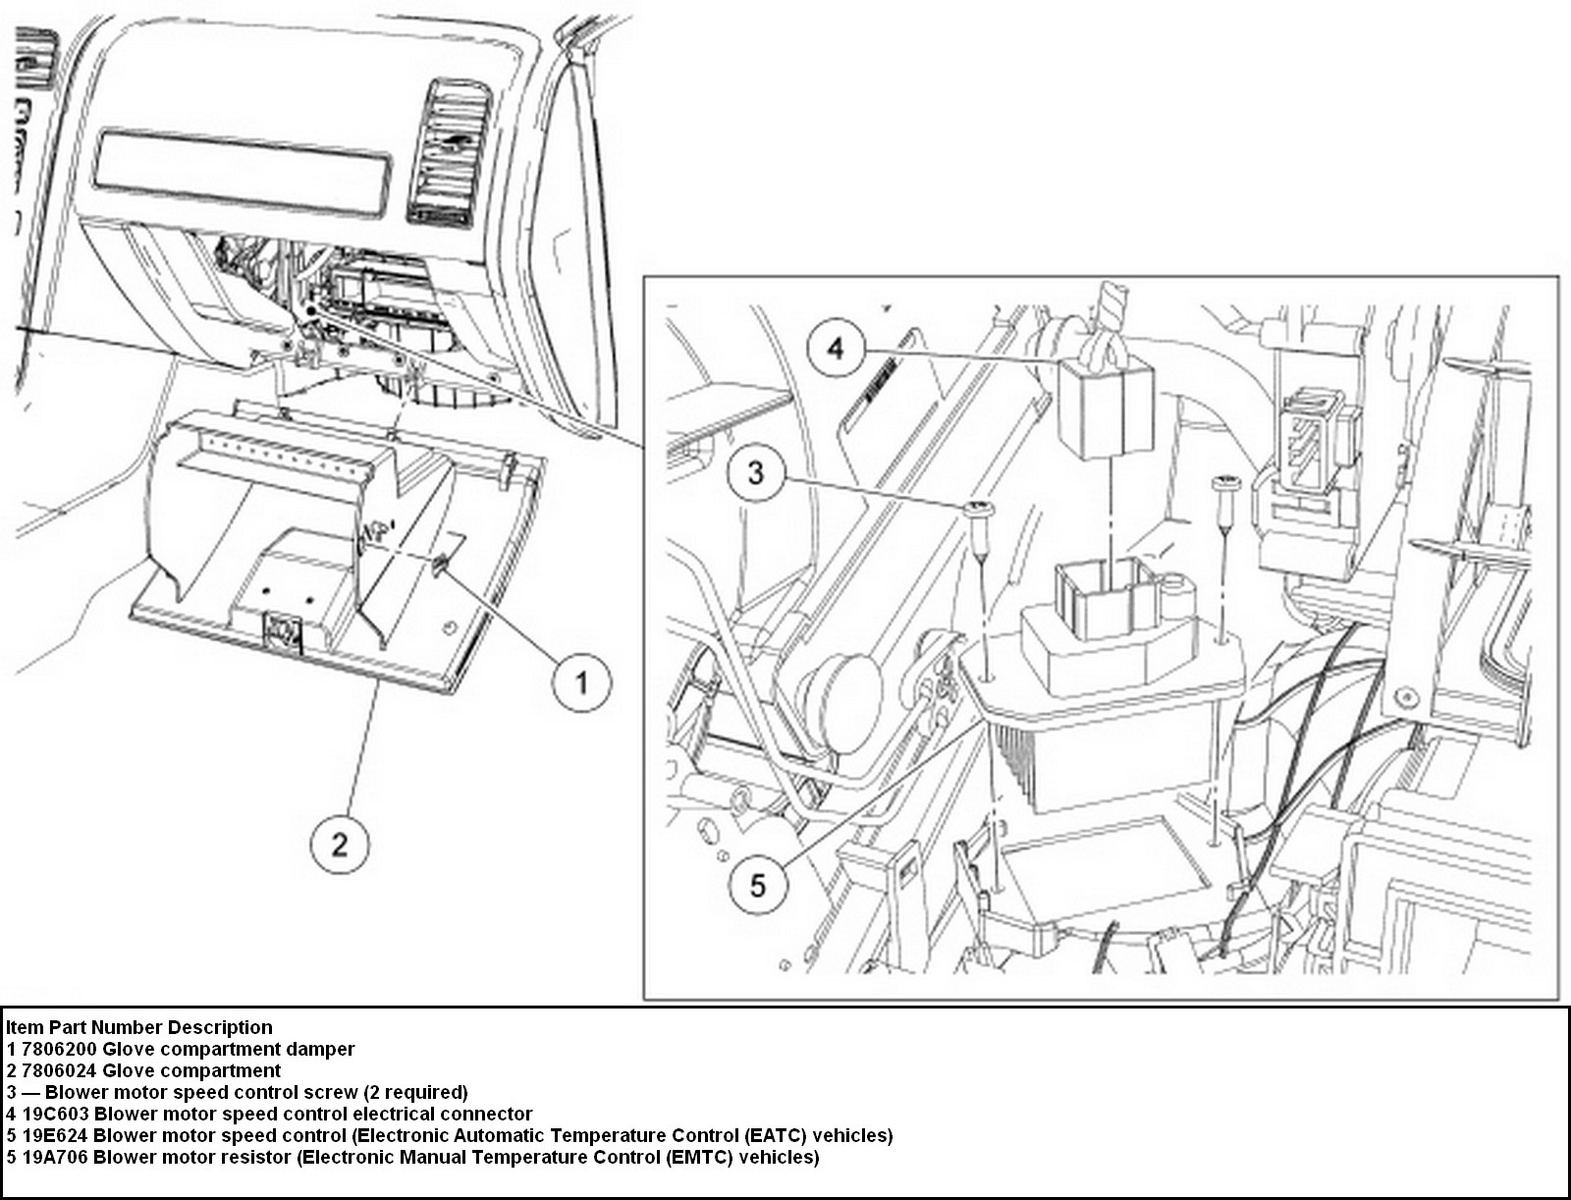 wrg 7916 2007 ford edge engine diagram with labels. Black Bedroom Furniture Sets. Home Design Ideas